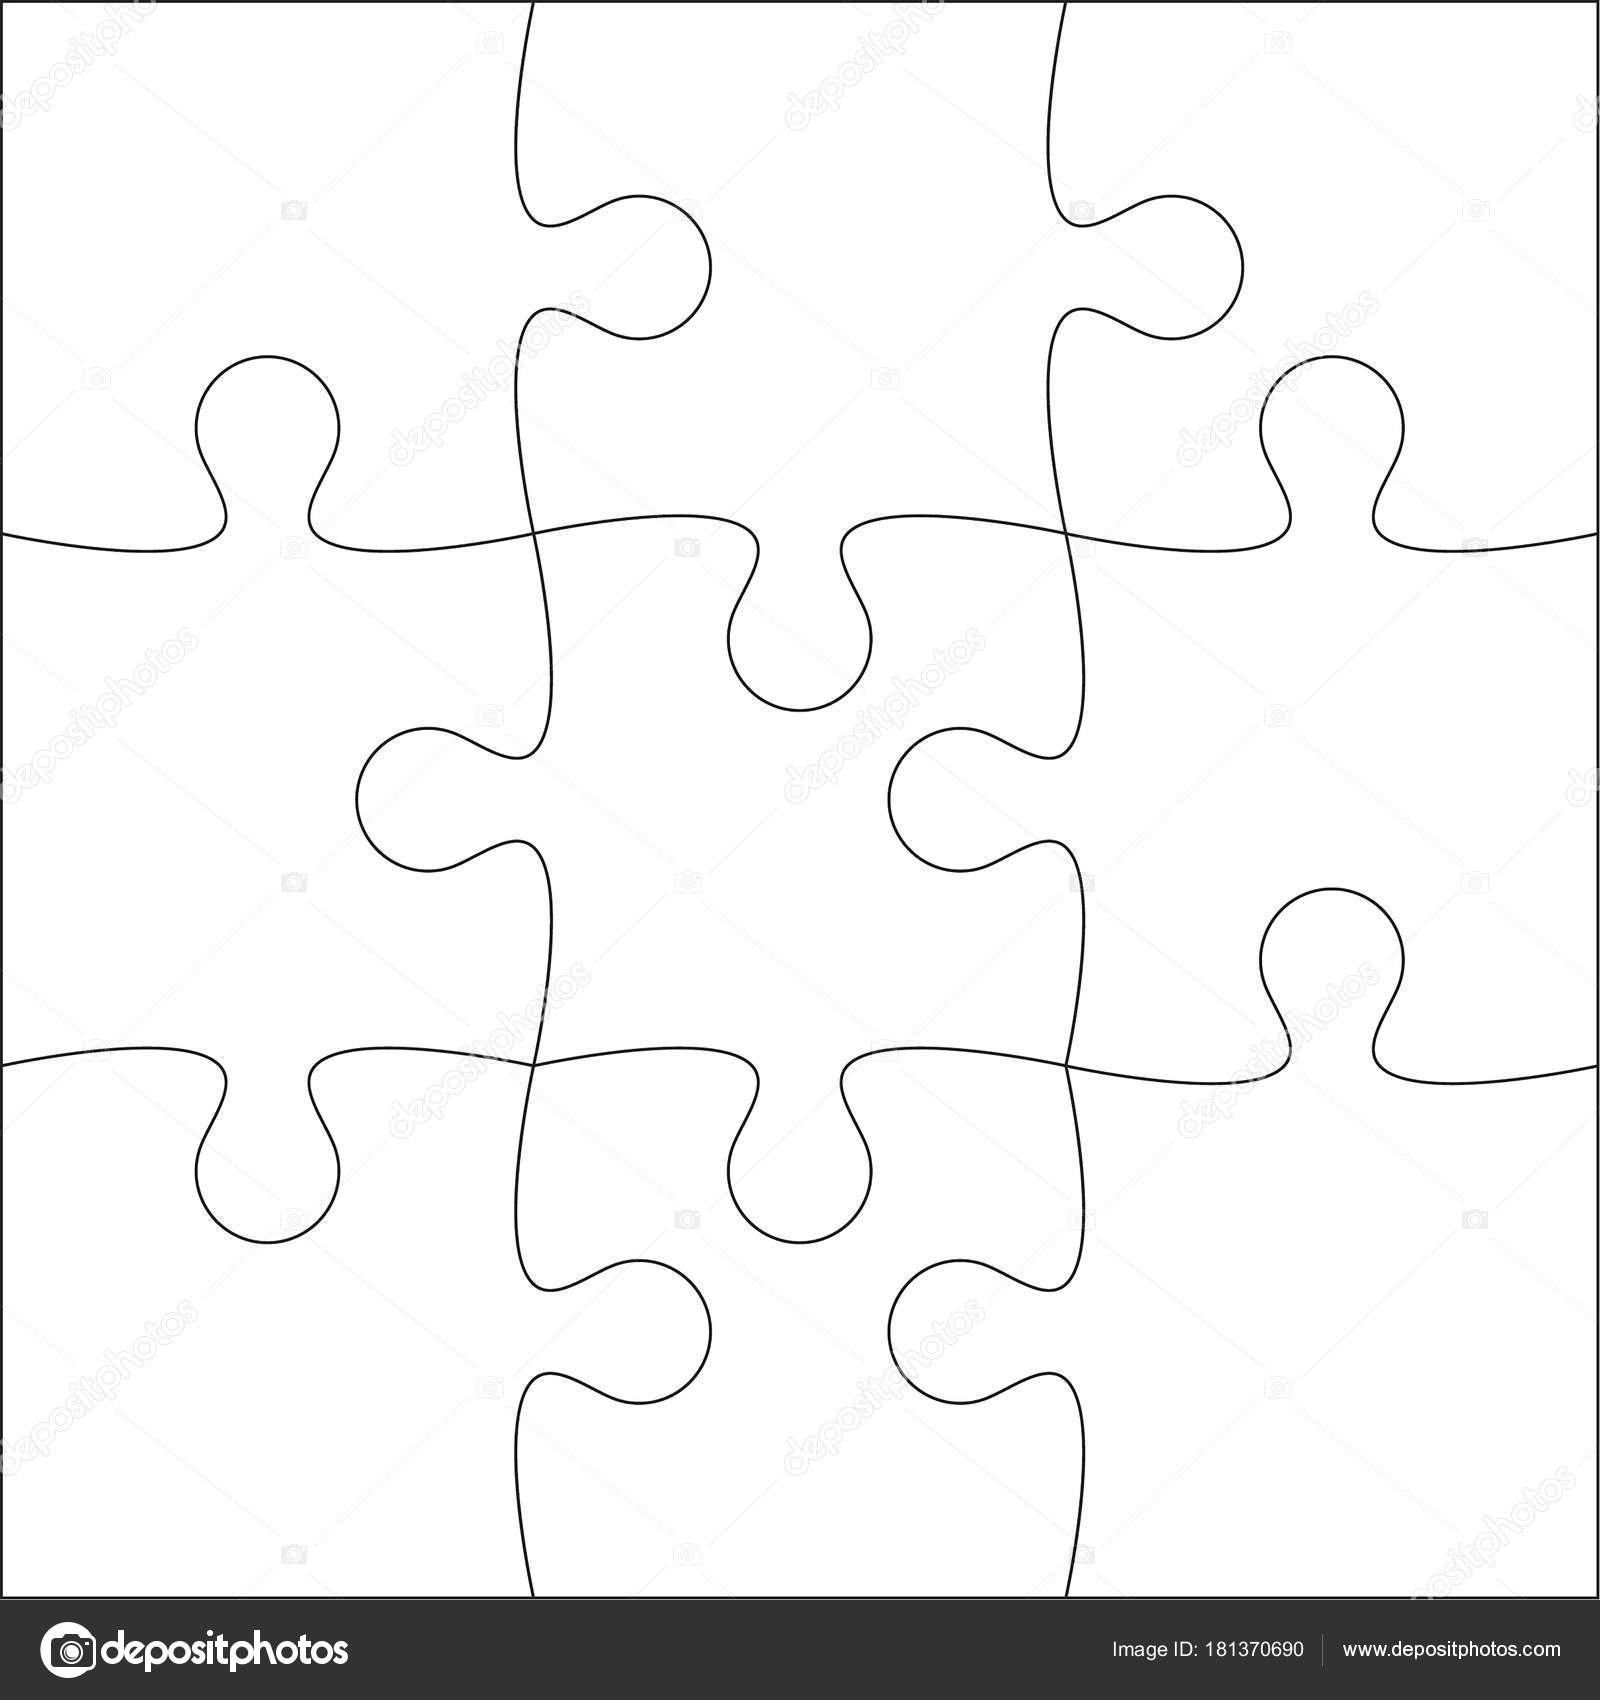 Jigsaw Puzzle Blank Template Or Cutting Guidelines Of 9 Pieces Plain White On Background Vector Illustration By Sumkinn